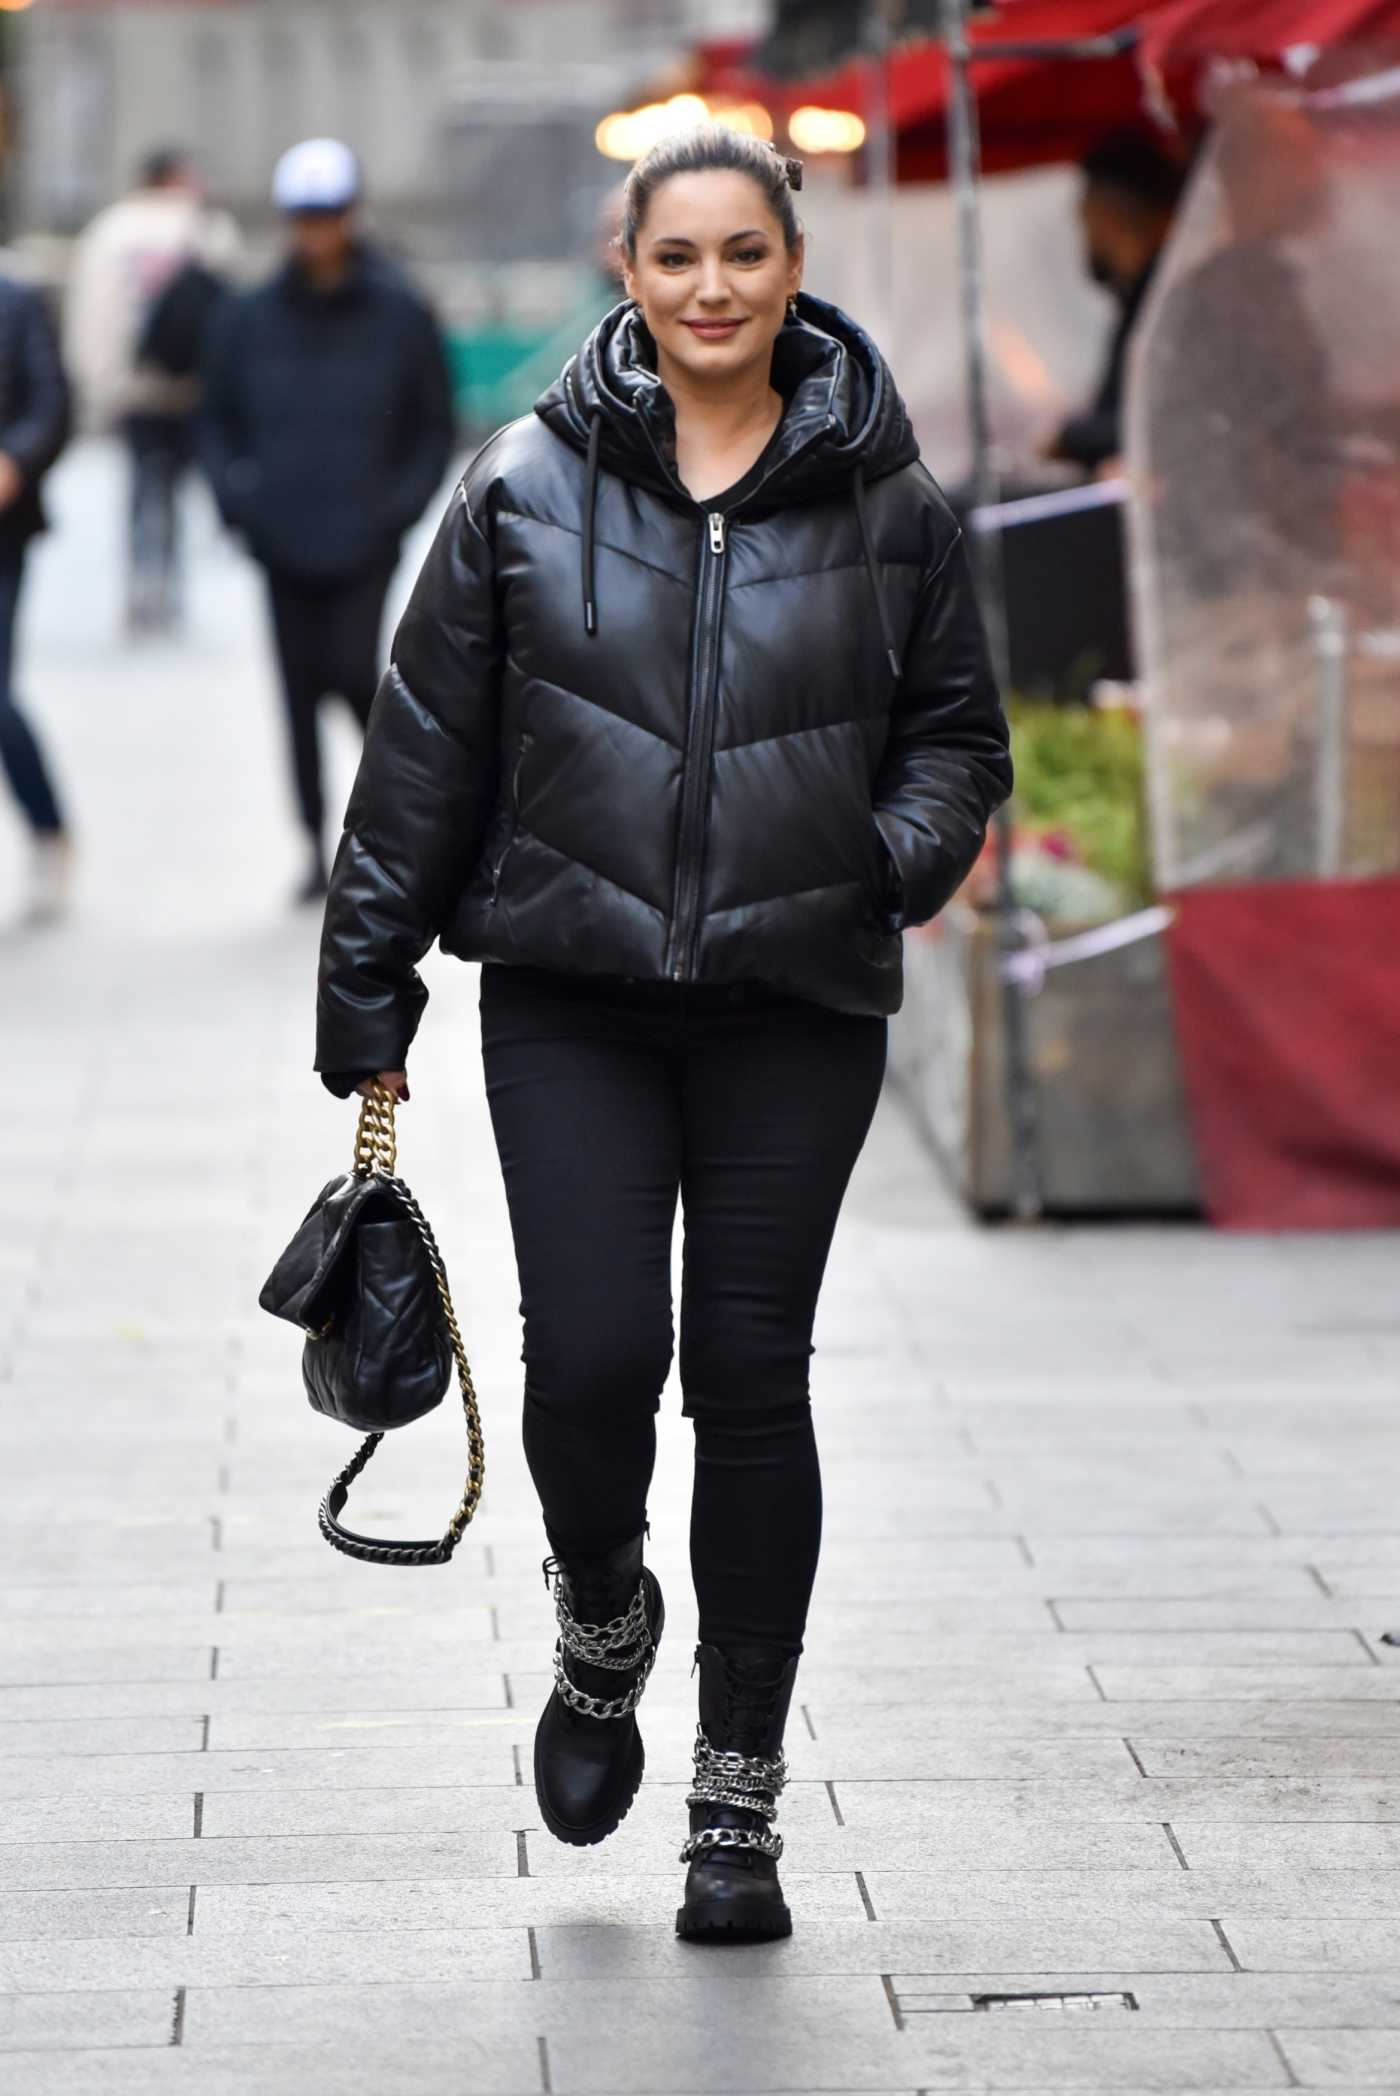 Kelly Brook in a Black Puffer Jacket Arrives at the Global Studios in London 10/20/2020